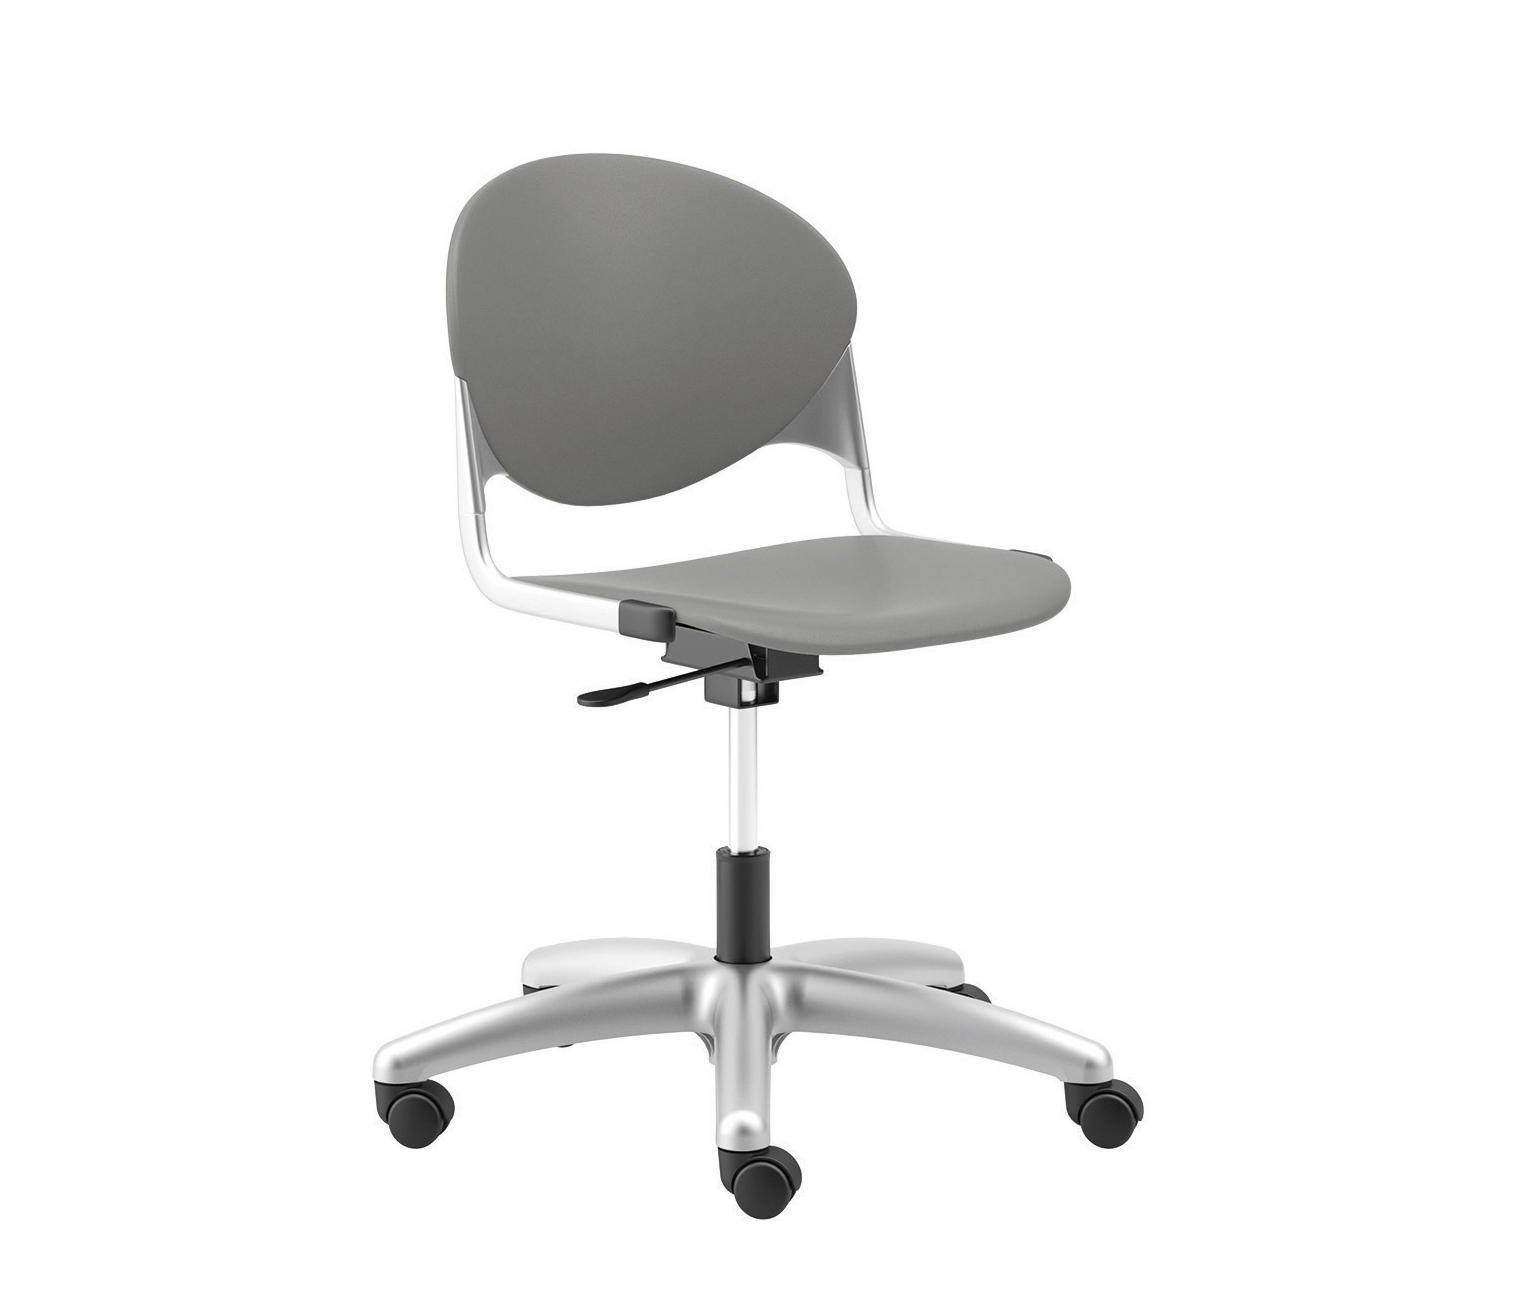 CINCH GUEST ARMLESS TASK CHAIR Task chairs from National fice